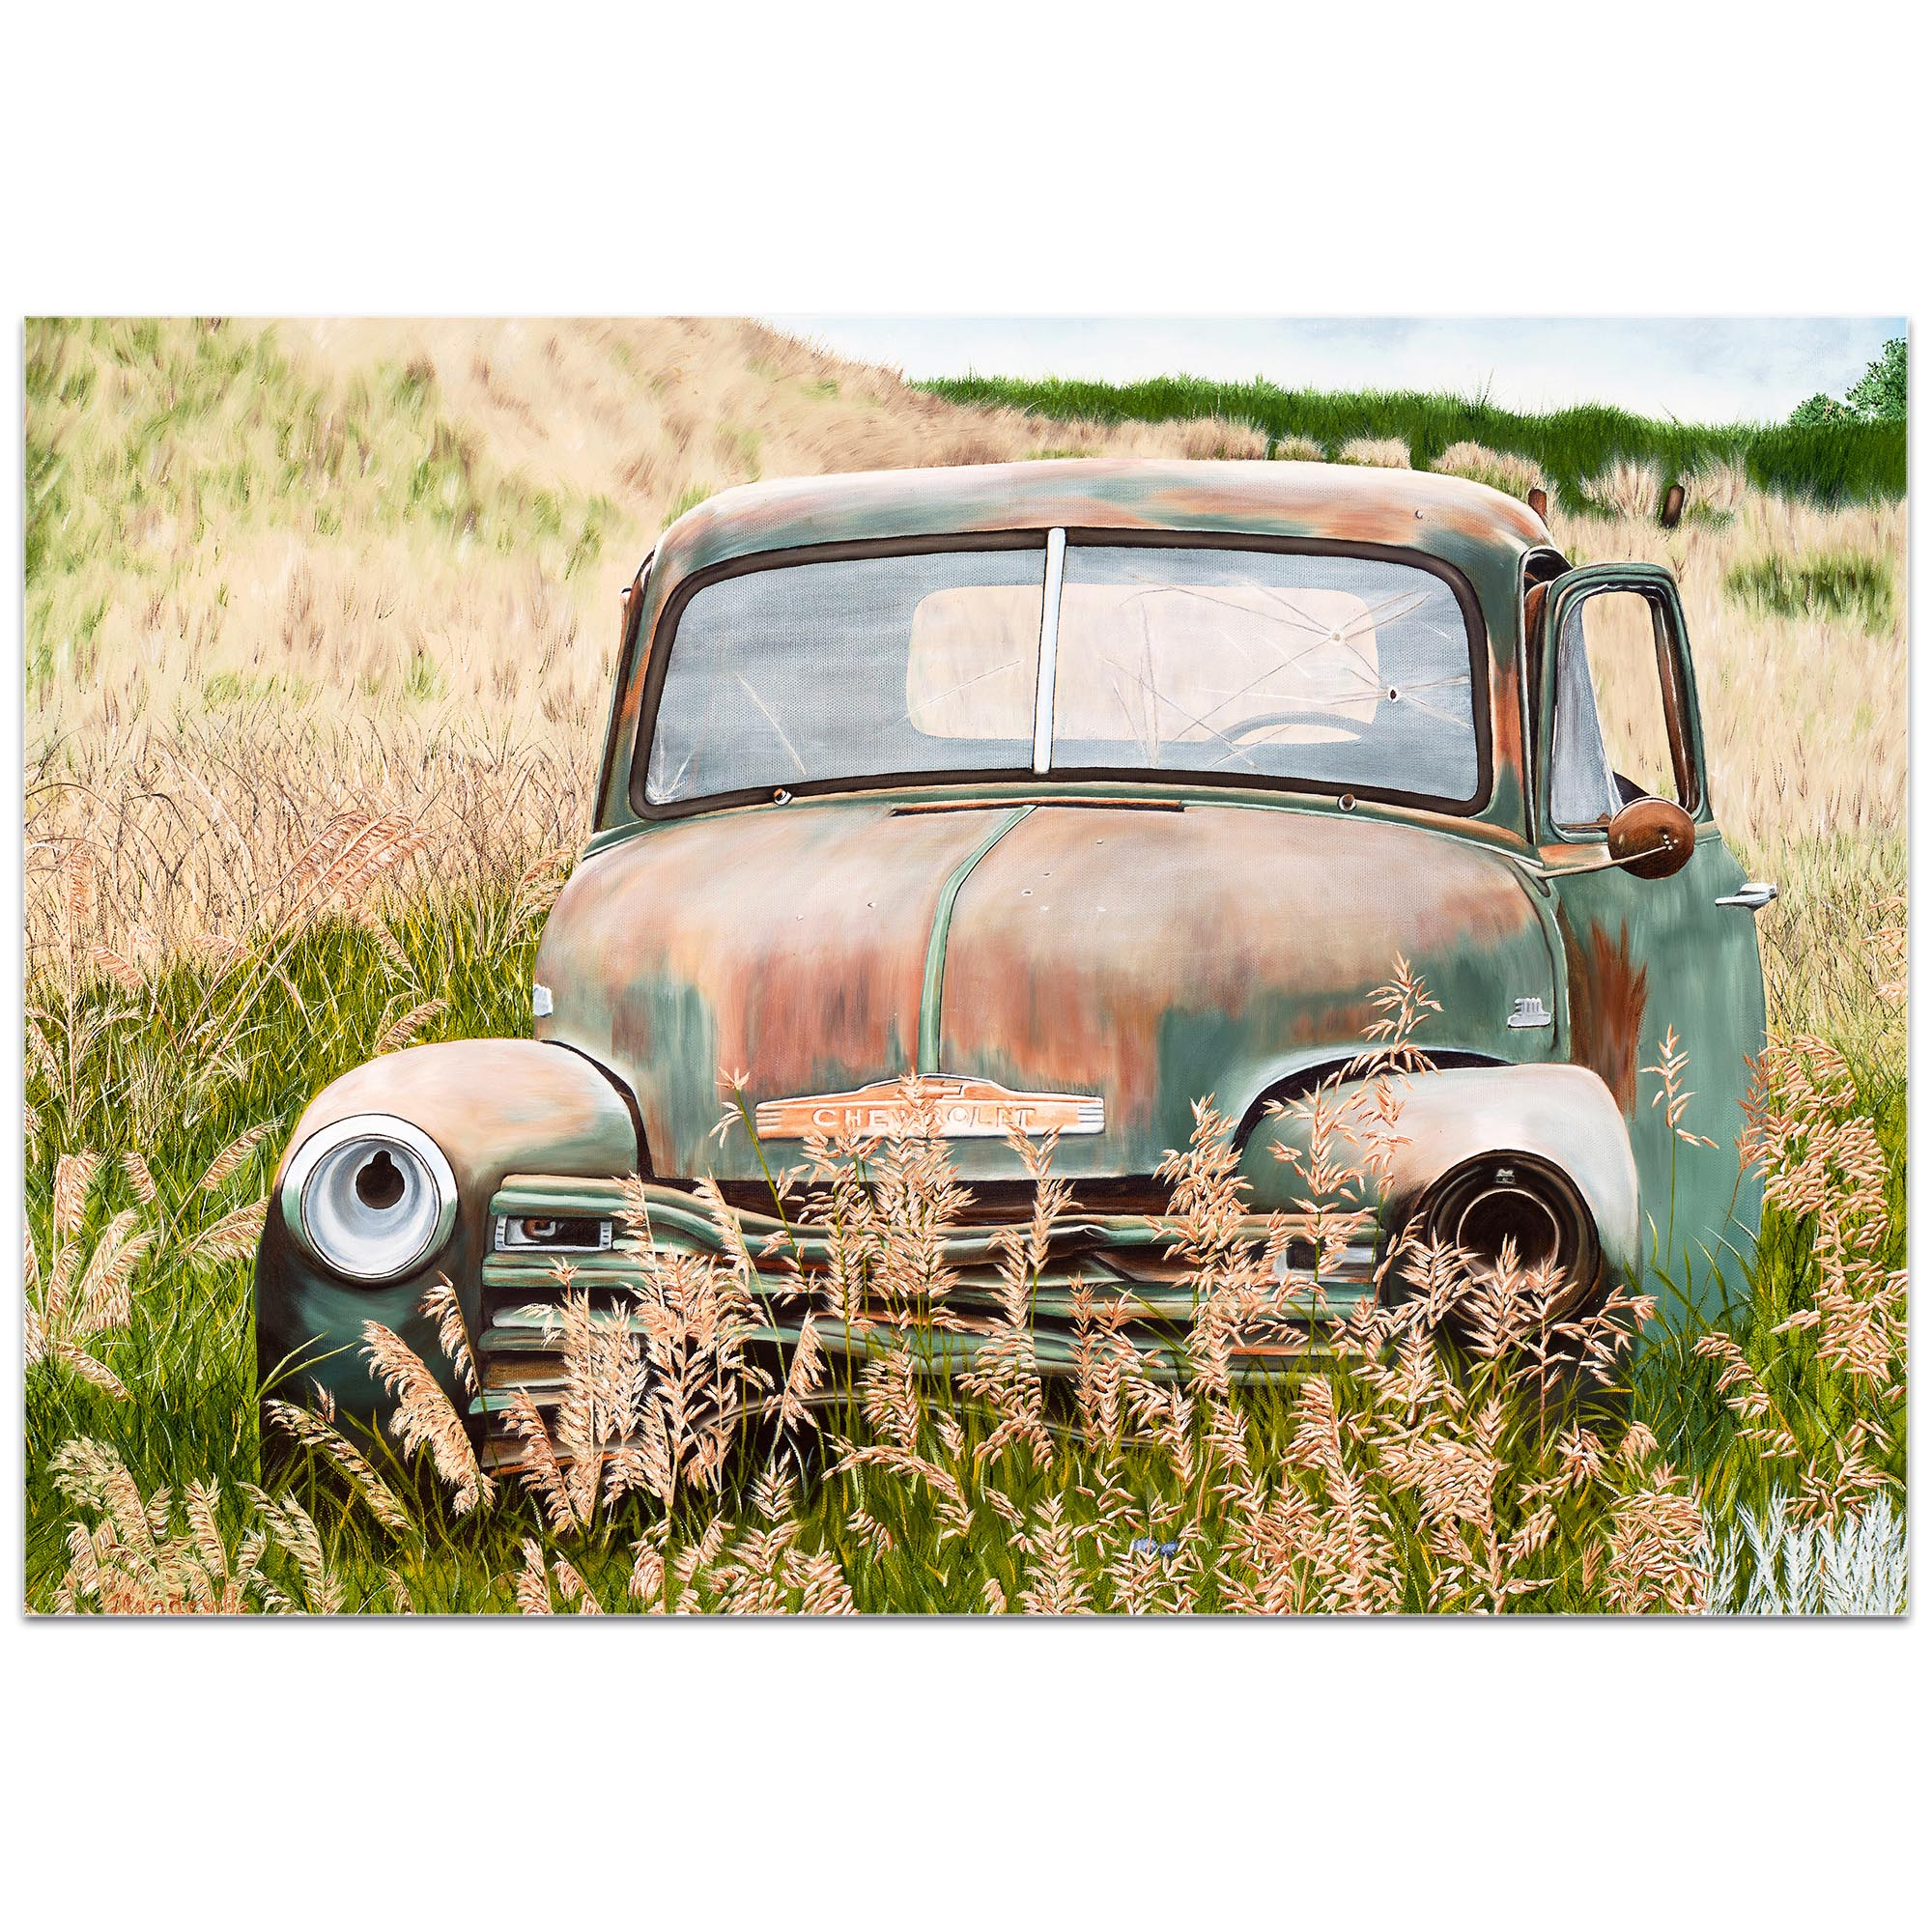 Americana Wall Art 'Franky's Truck' - Classic Trucks Decor on Metal or Plexiglass - Image 2